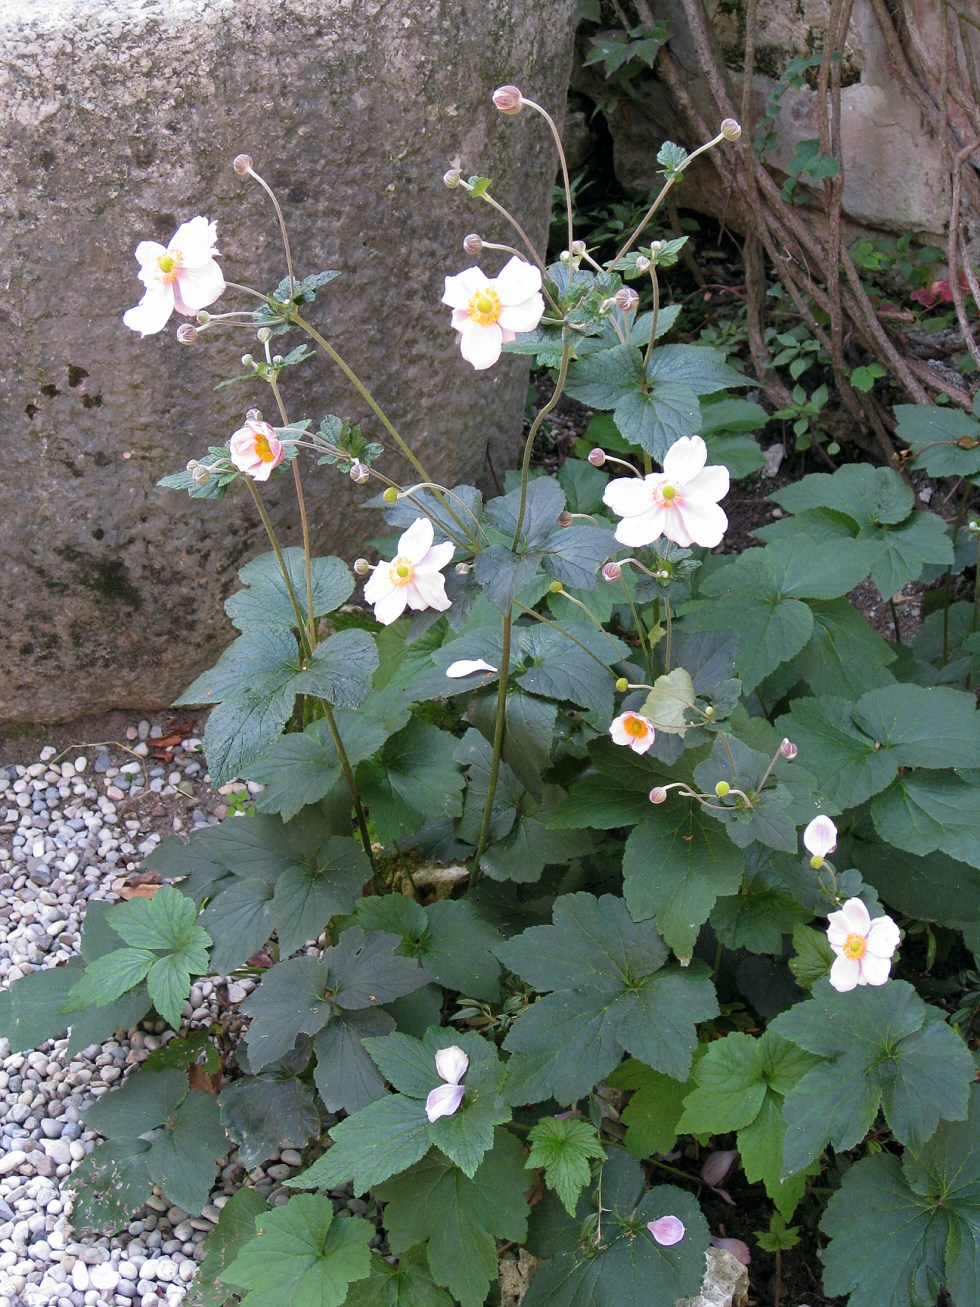 (above) a close-up view of the anemones in the gardens of Villa Giusti